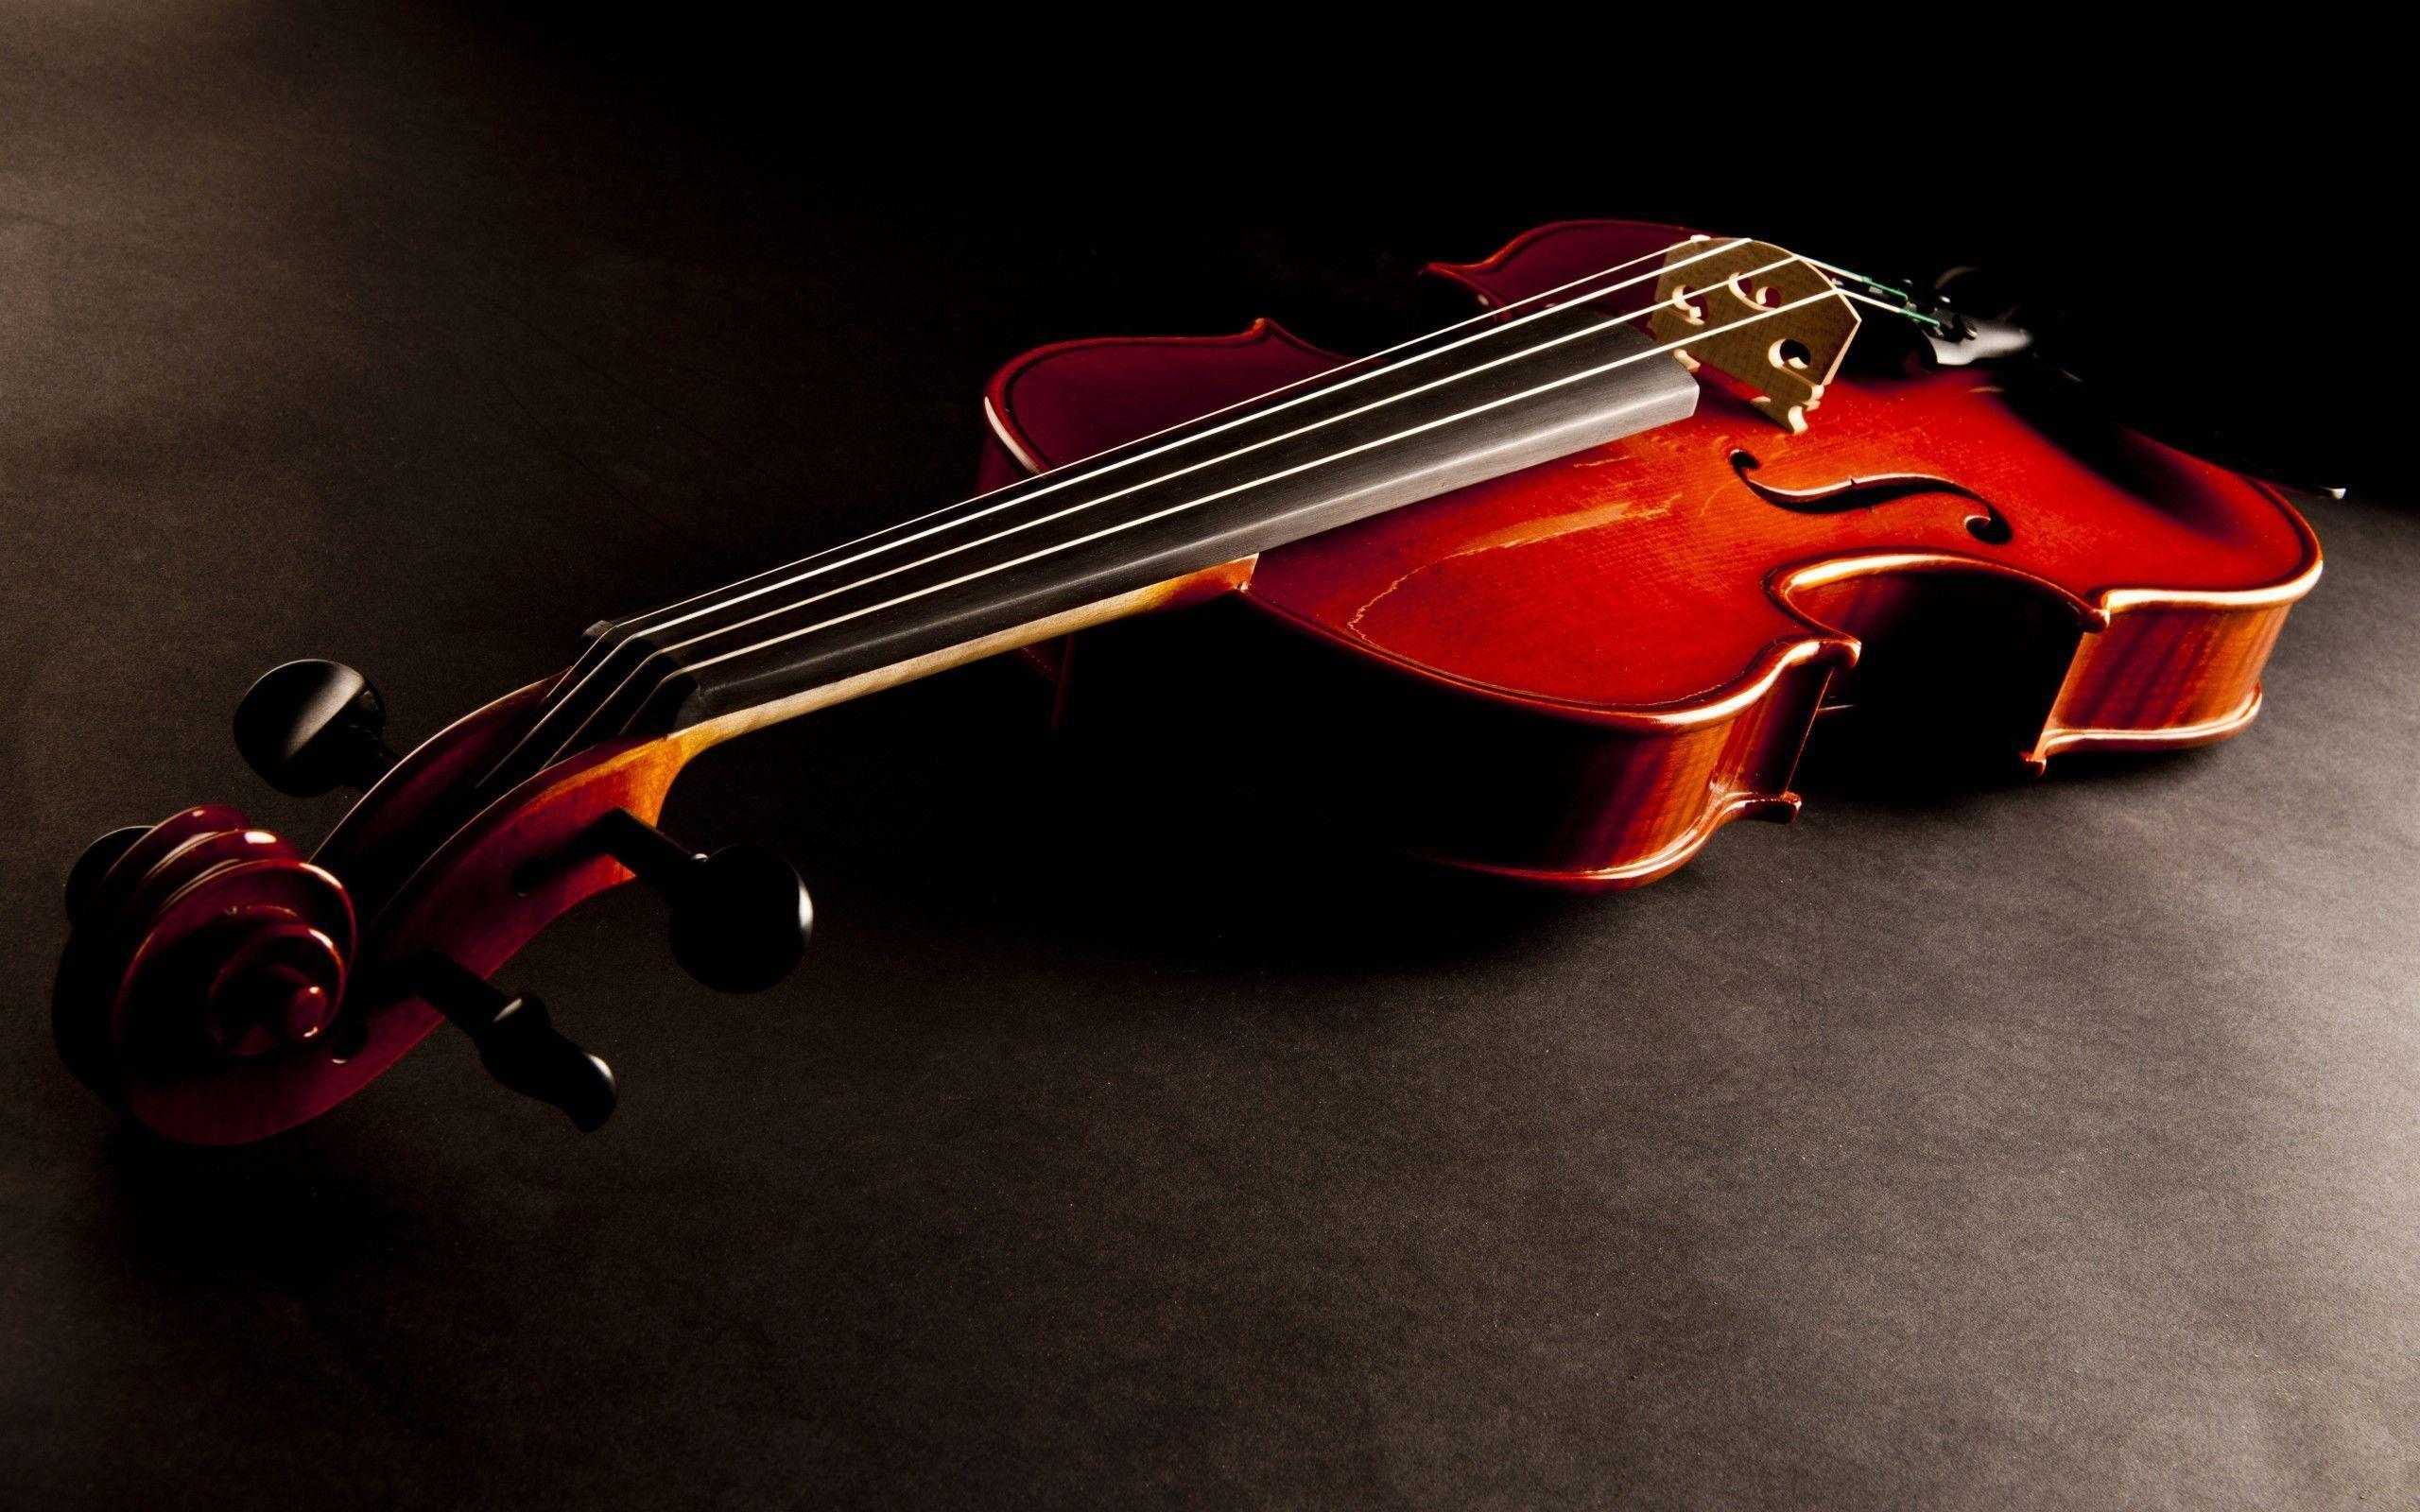 cool 3d wallpaper violin - photo #6